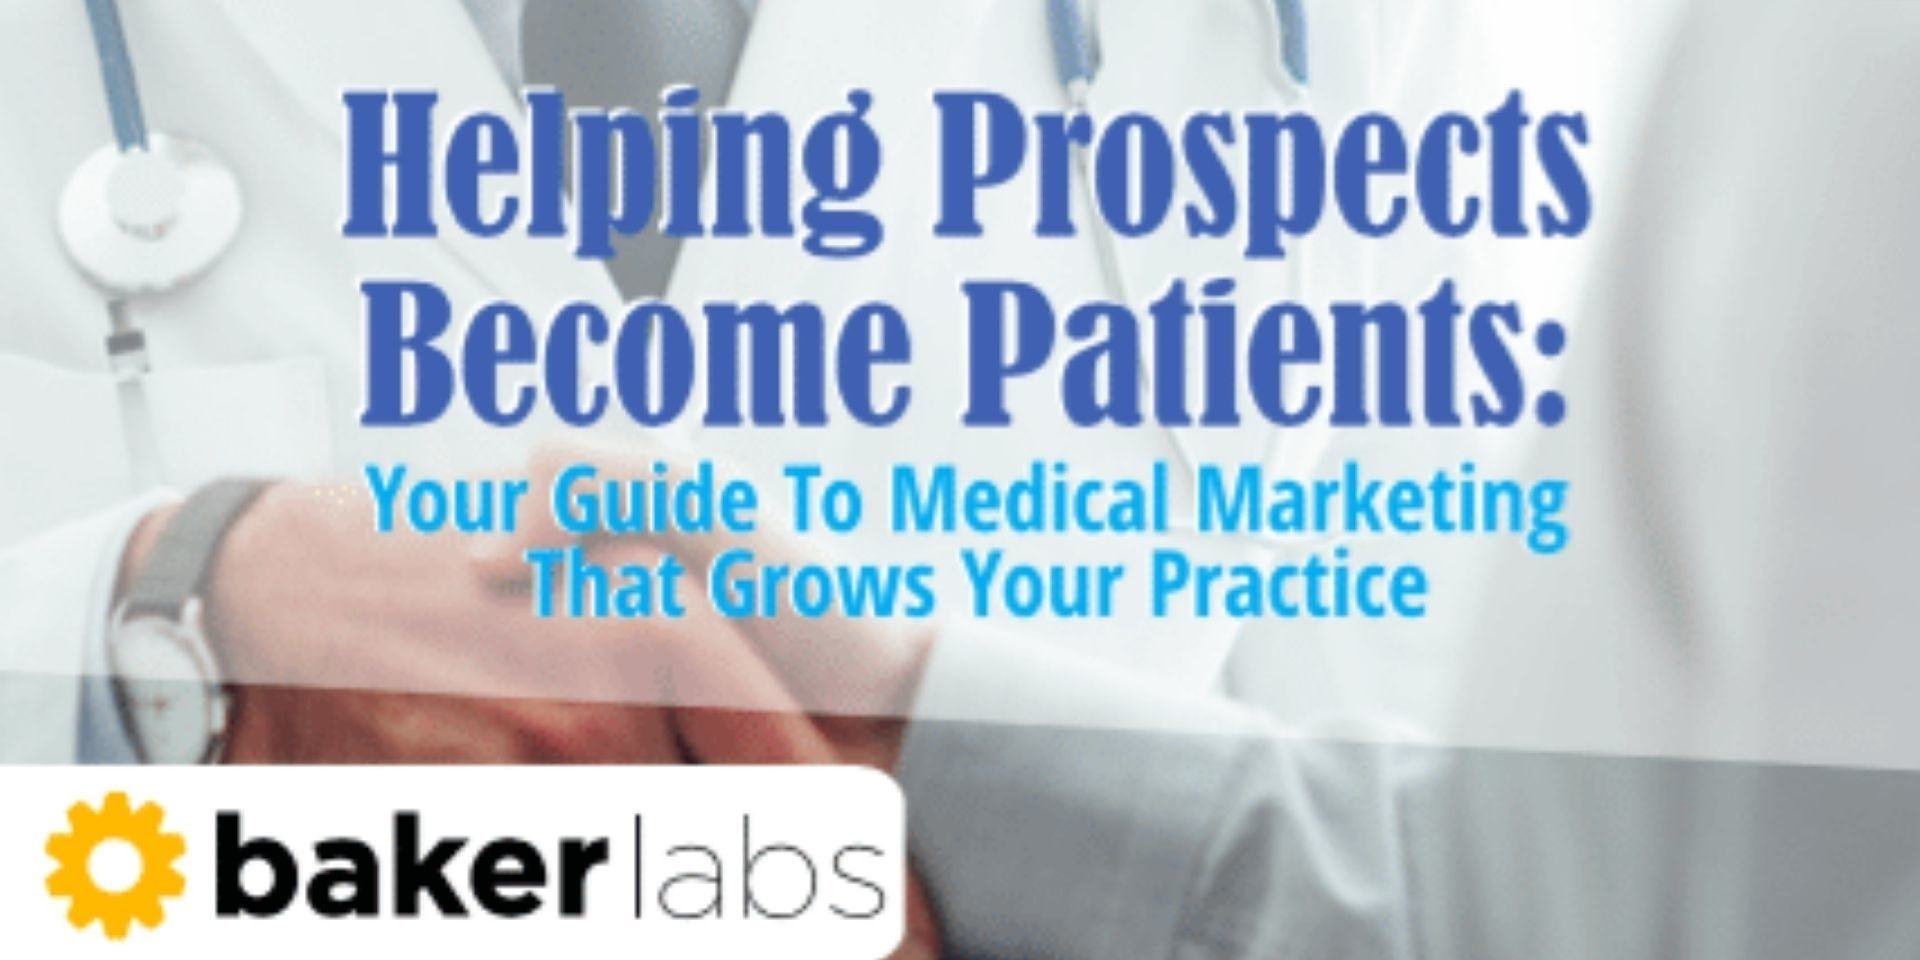 Guide To Medical Marketing That Grows Your Practice